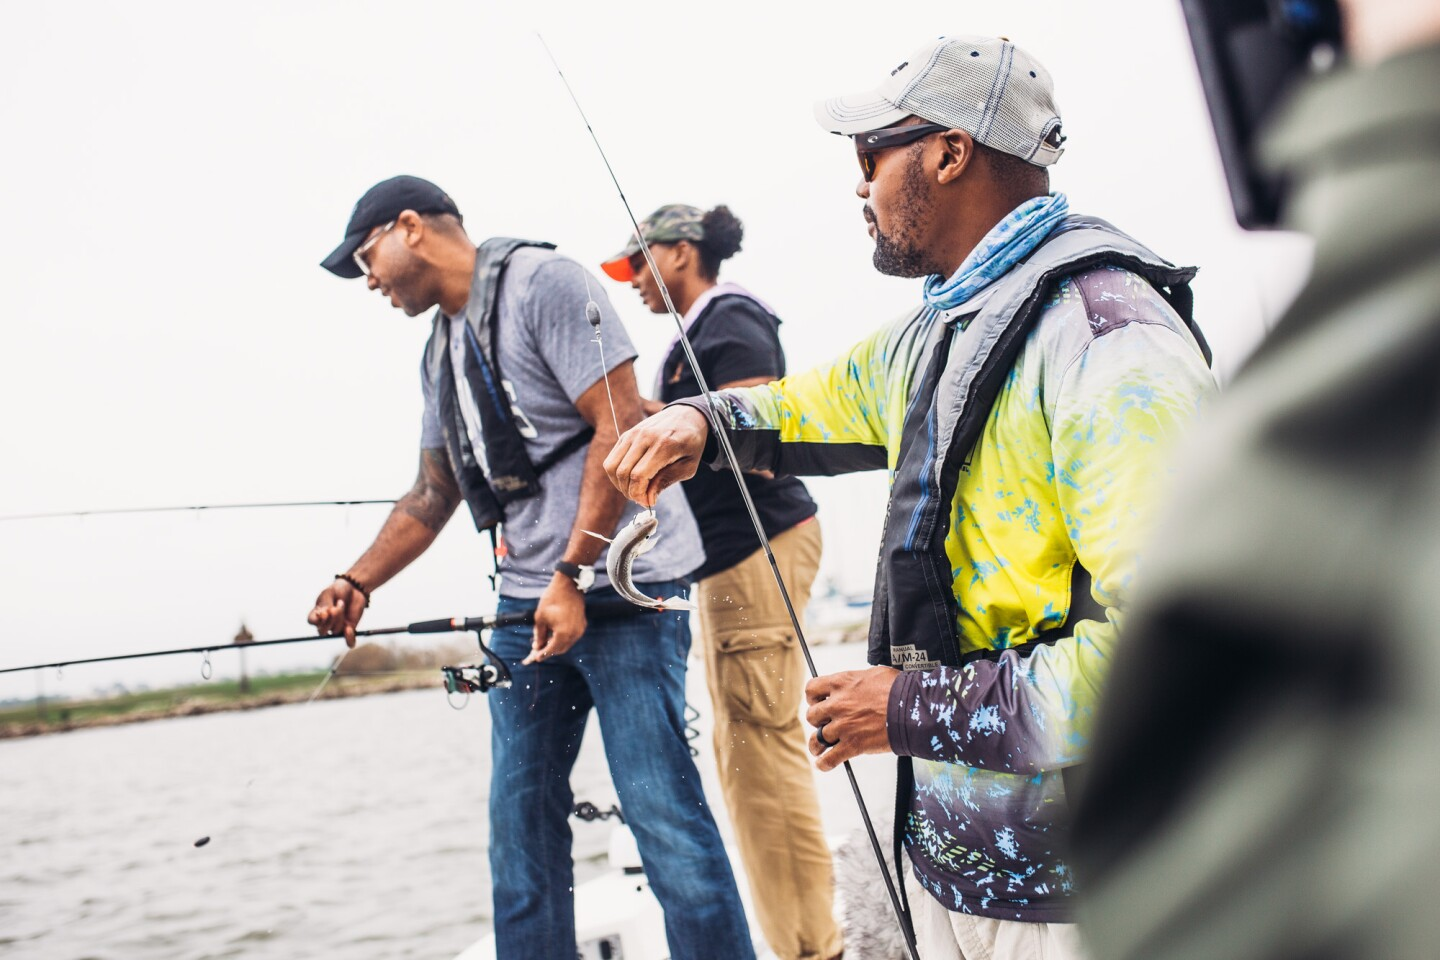 Captain Frederick McBride works closely with local chefs delivering bay water fish through his company, Captain Fred's Seafood.